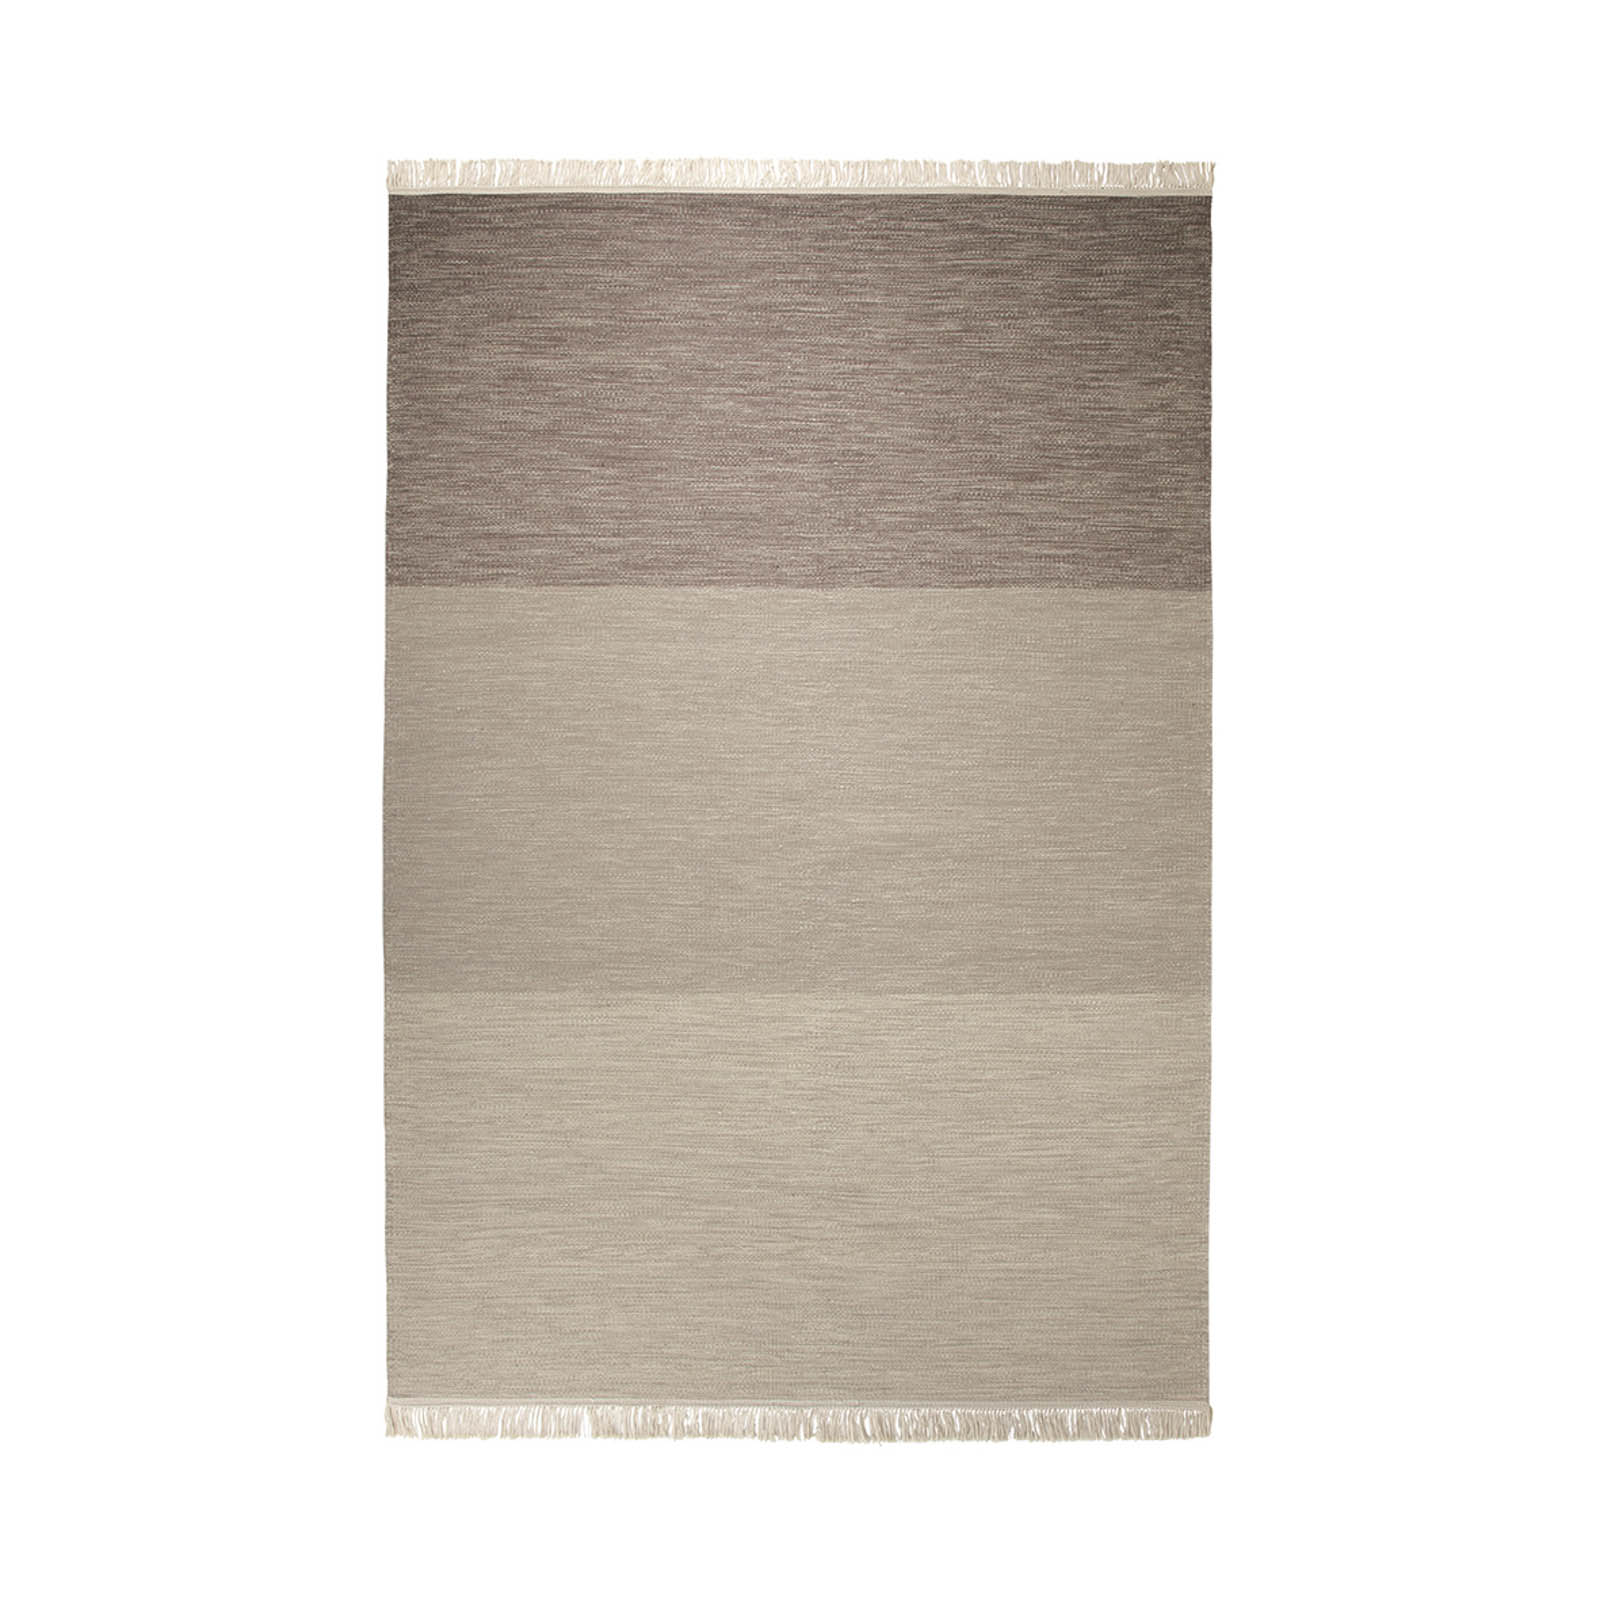 Esprit Casual Rugs 7019 02 Brown